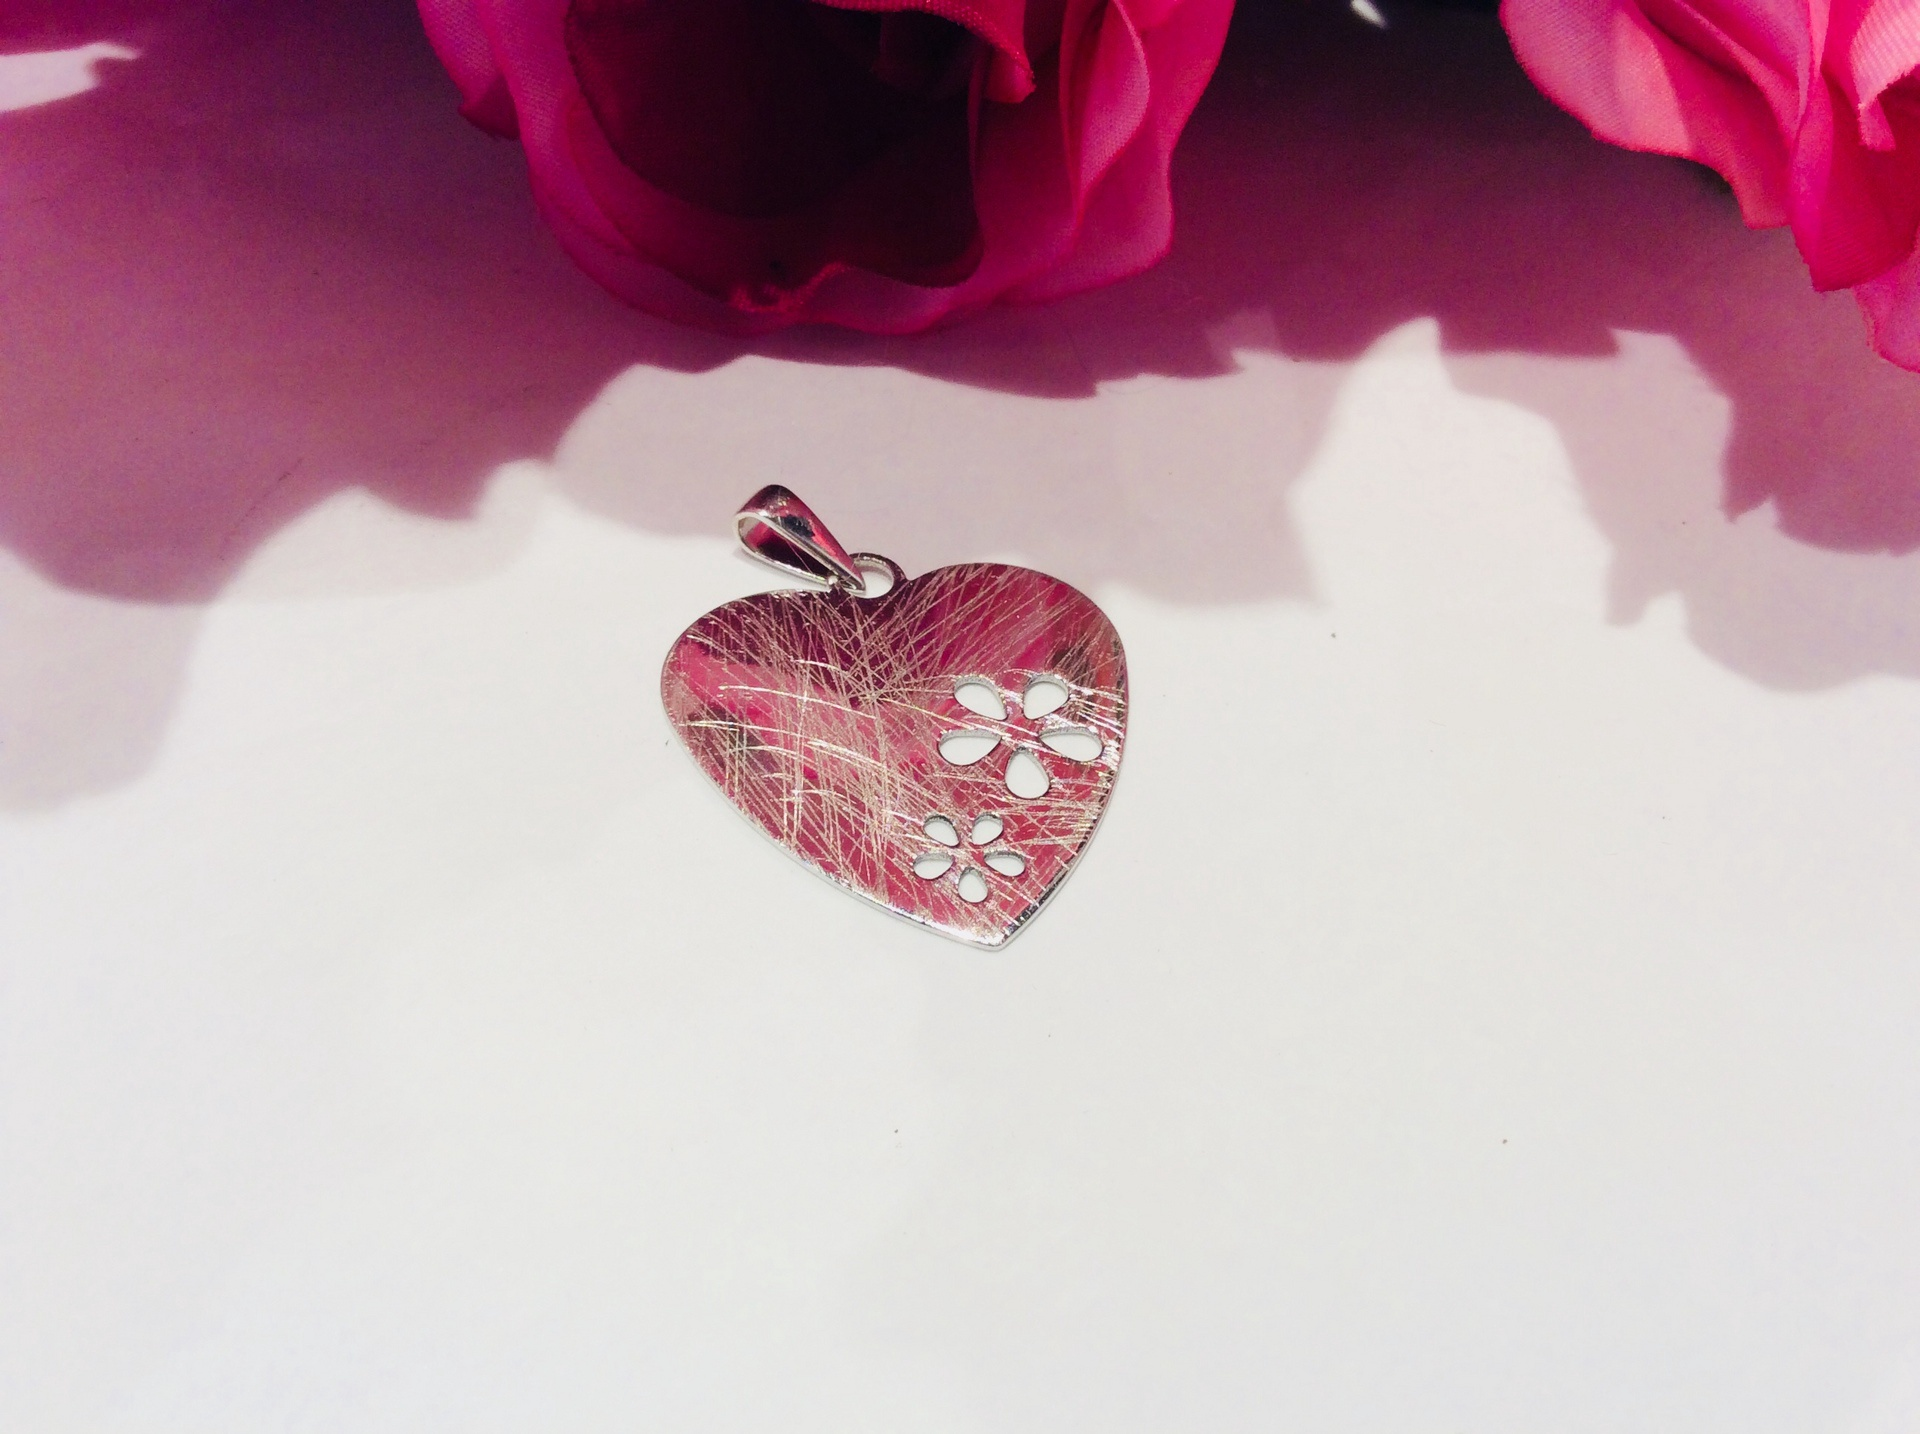 Sterling Silver Heart Pendant with flower cutouts